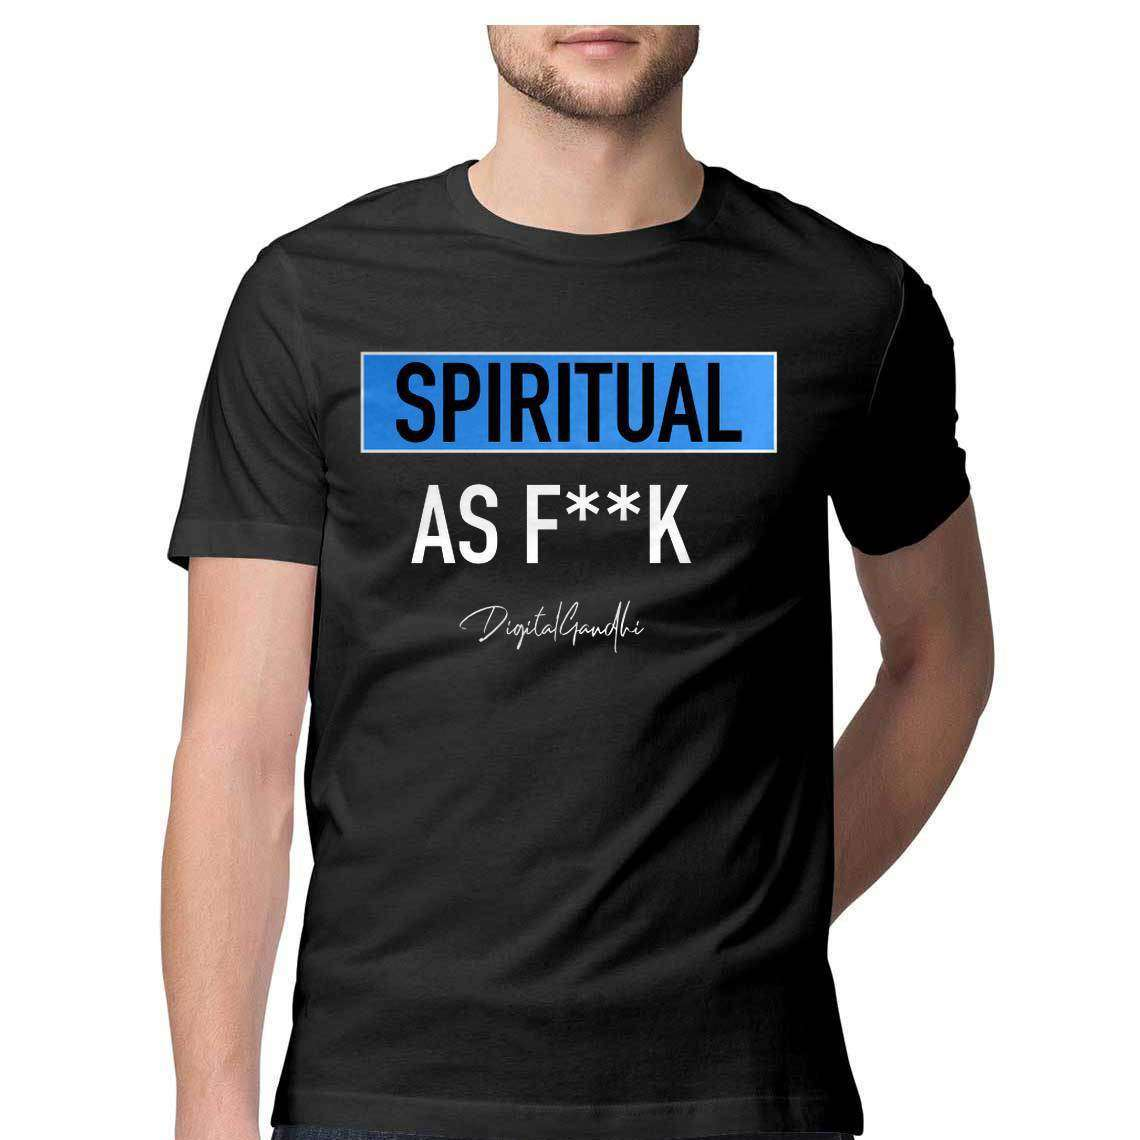 Spiritual as F**K T shirt / Digital Gandhi - Good Network by Digital Gandhi Digital Gandhi ,